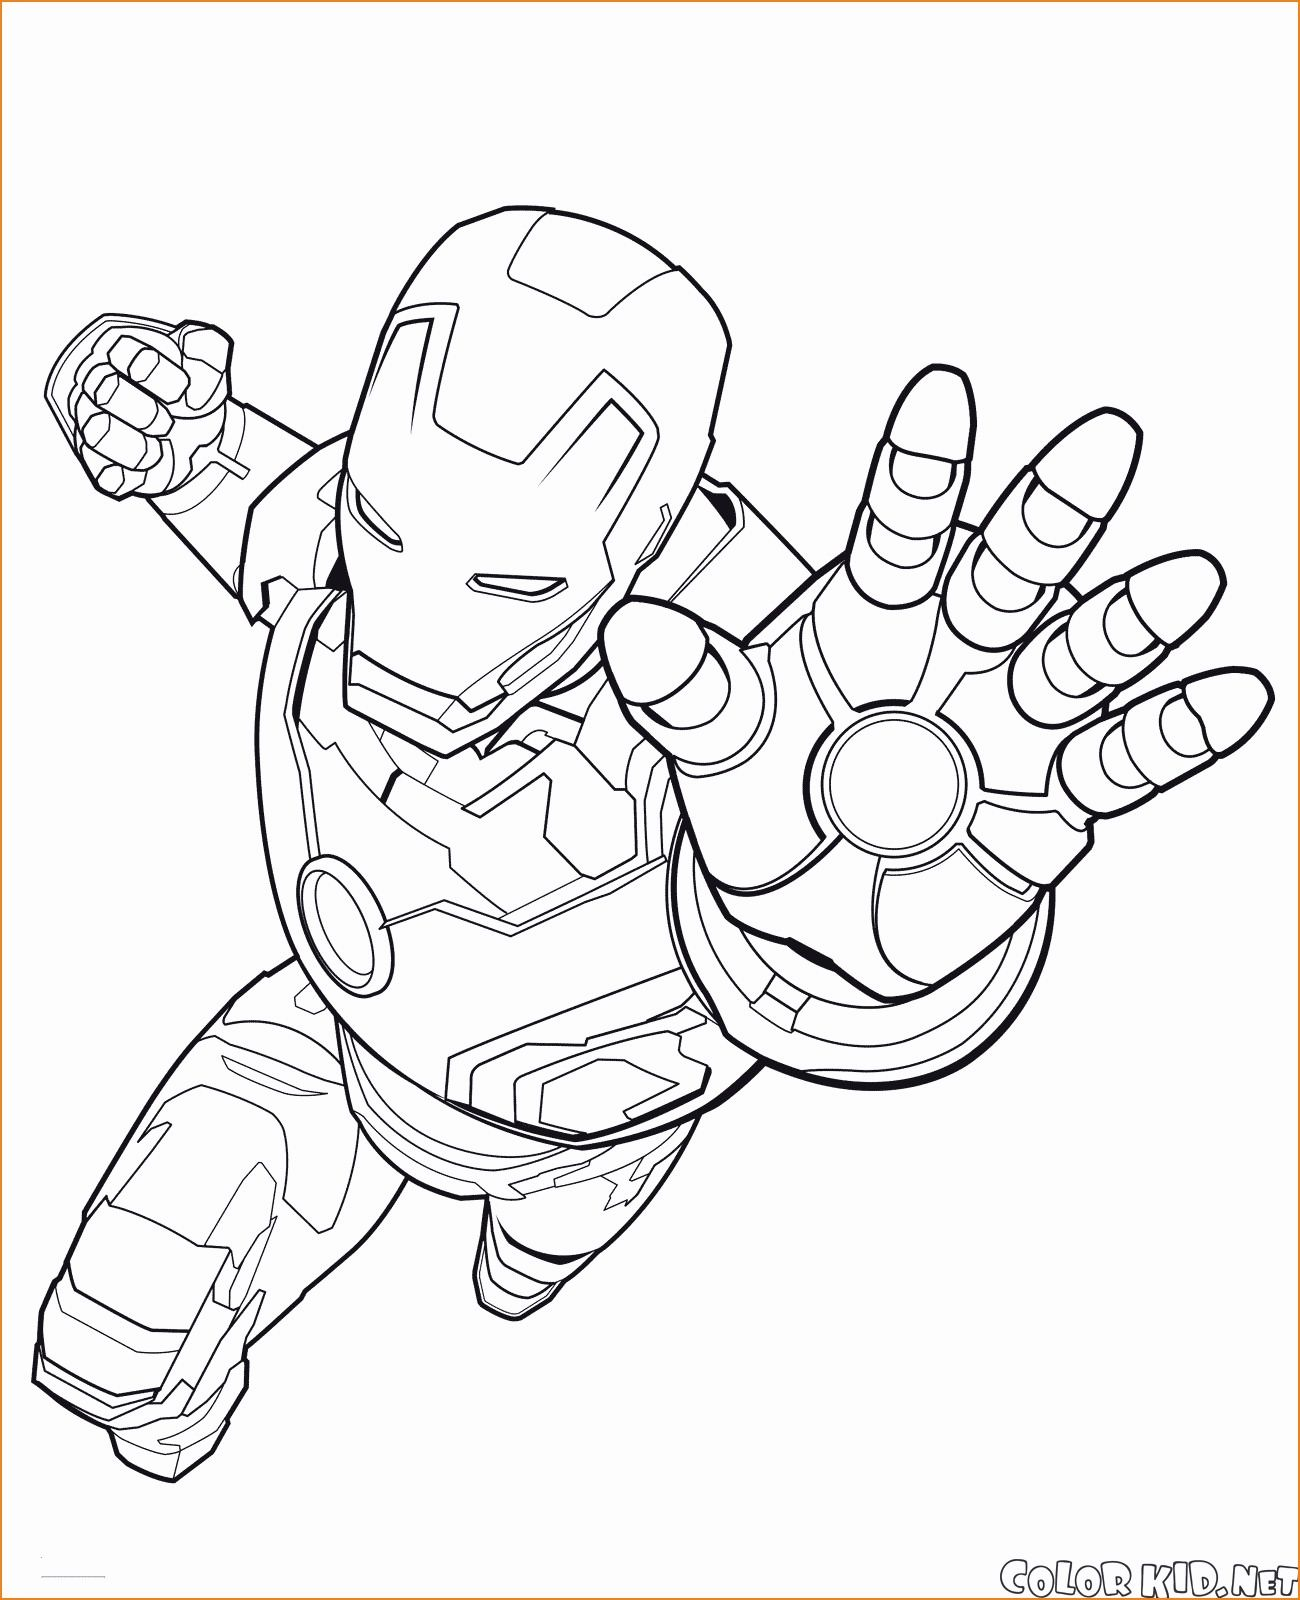 Black Panther Coloring Book Inspirational Coloring Pages Coloring Book Frees Printable Days Fo Avengers Coloring Pages Superhero Coloring Pages Marvel Coloring